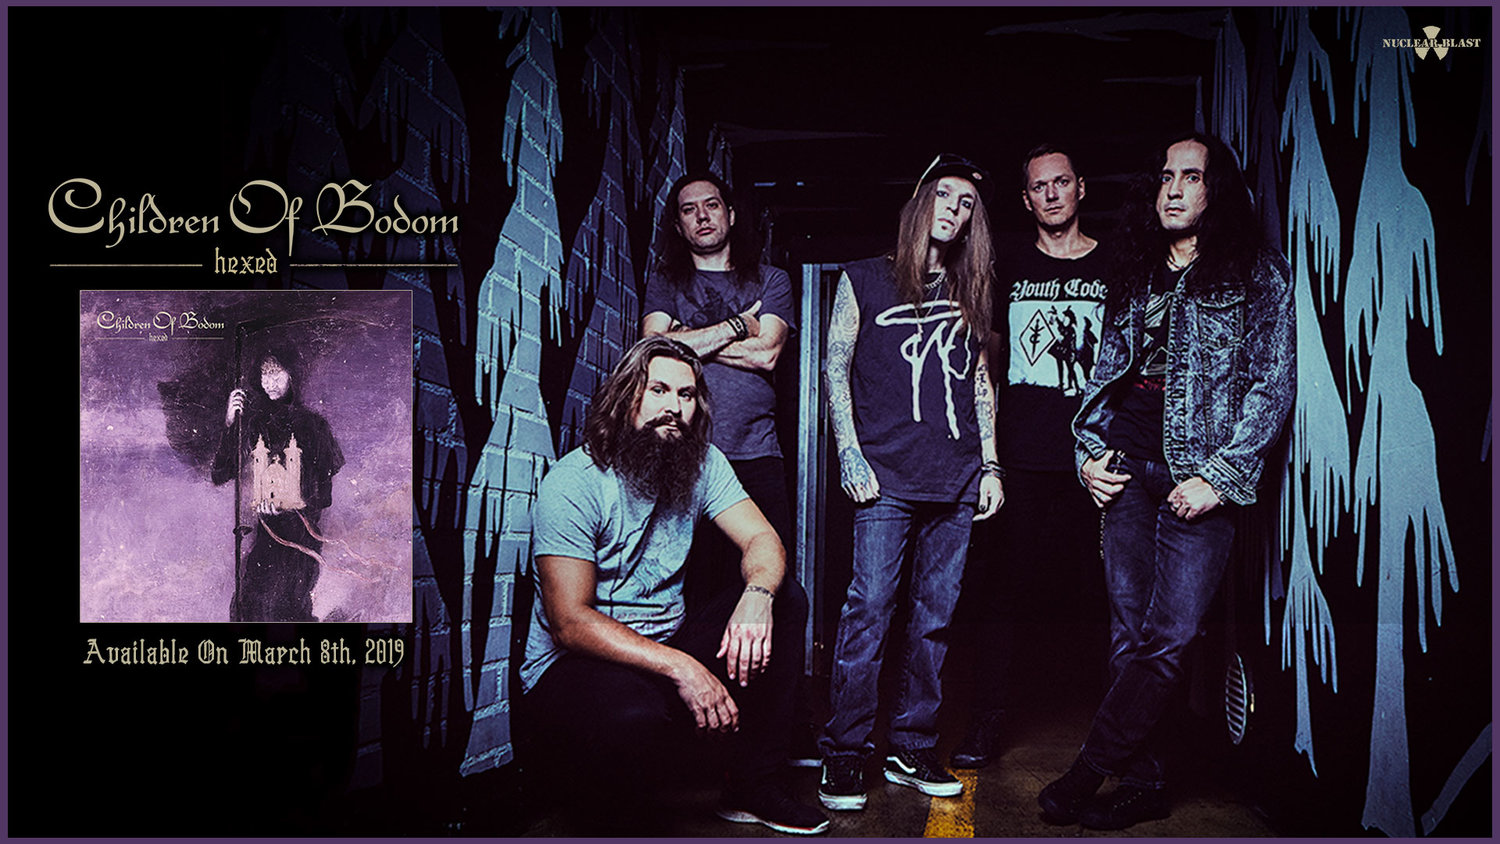 Children Of Bodom - Official Website - Hexed out now! - Tour Dates